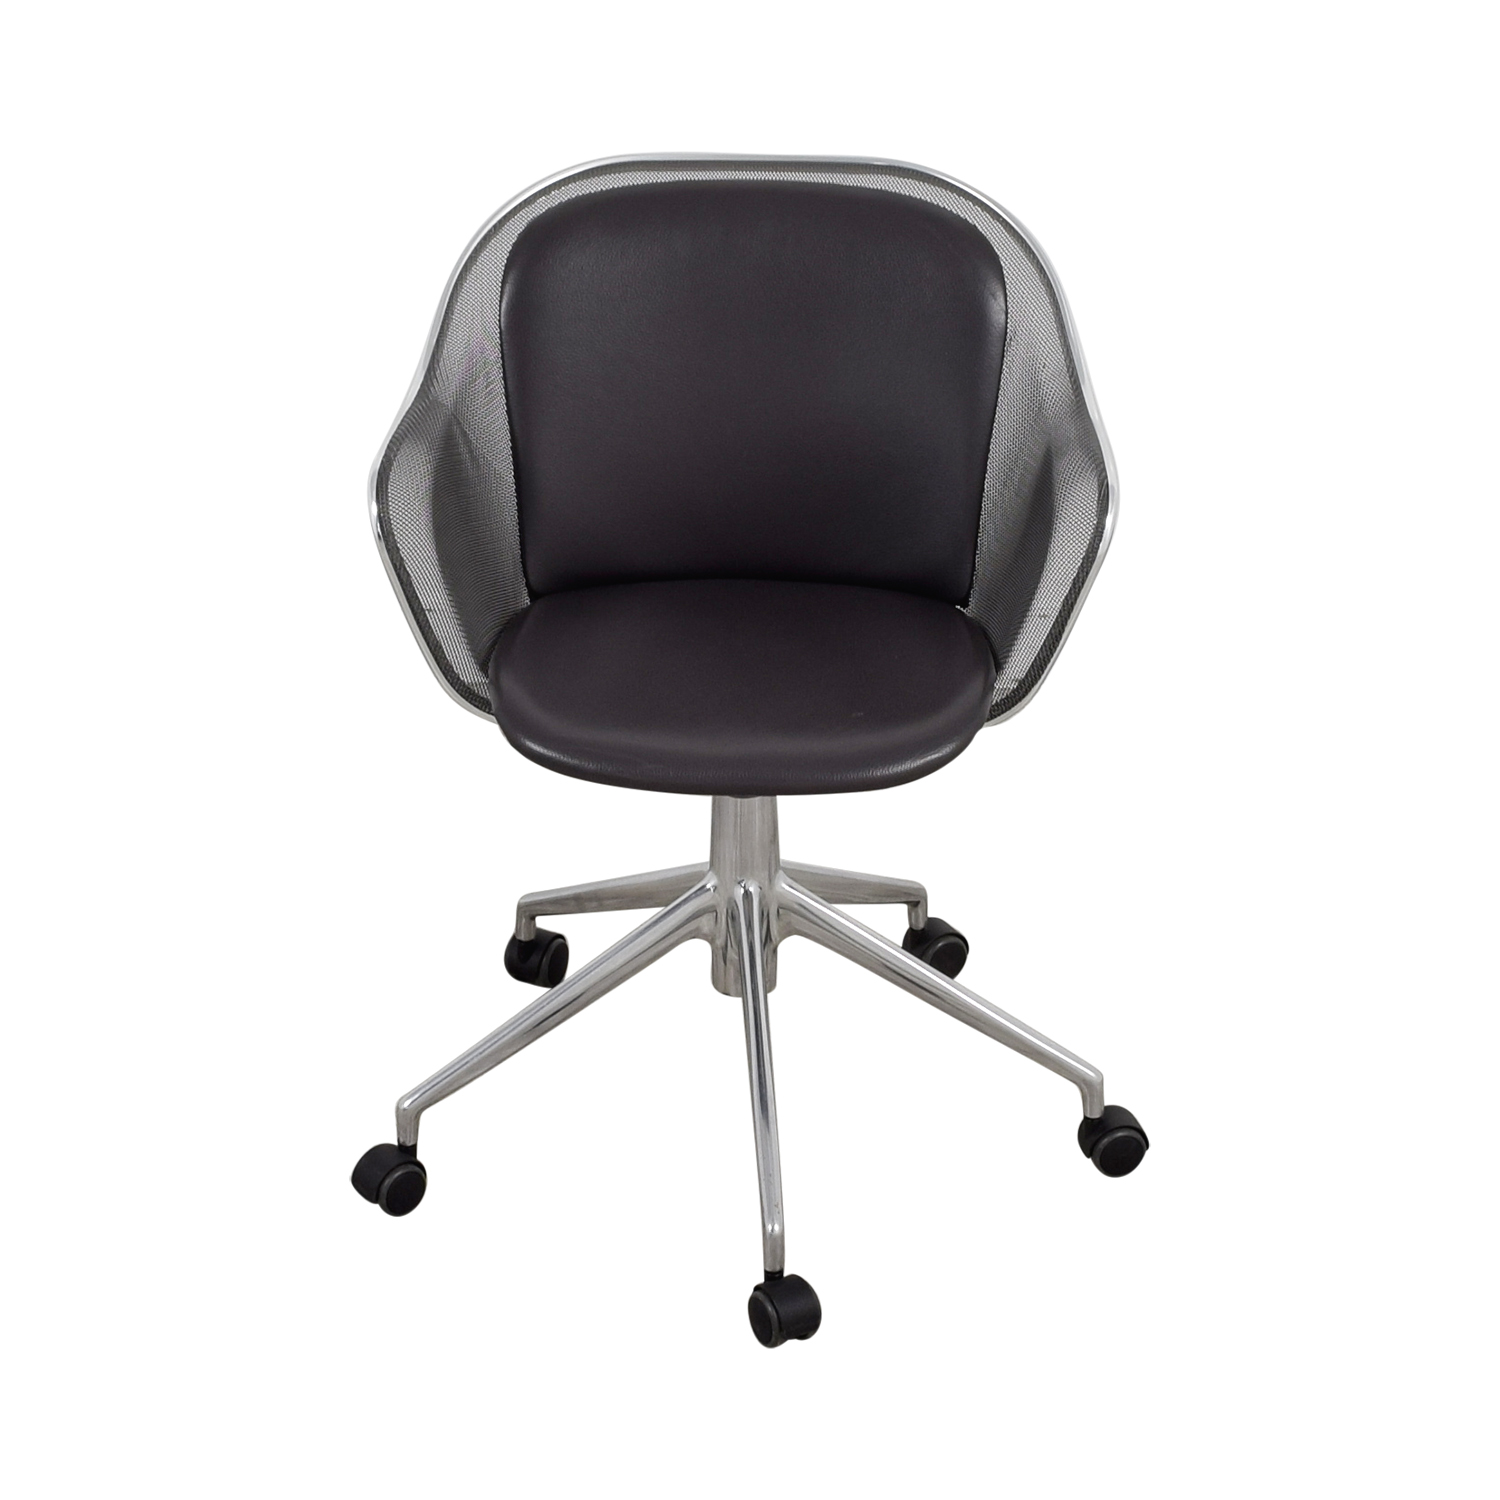 grey leather desk chair steel cushions 90 off b and italia